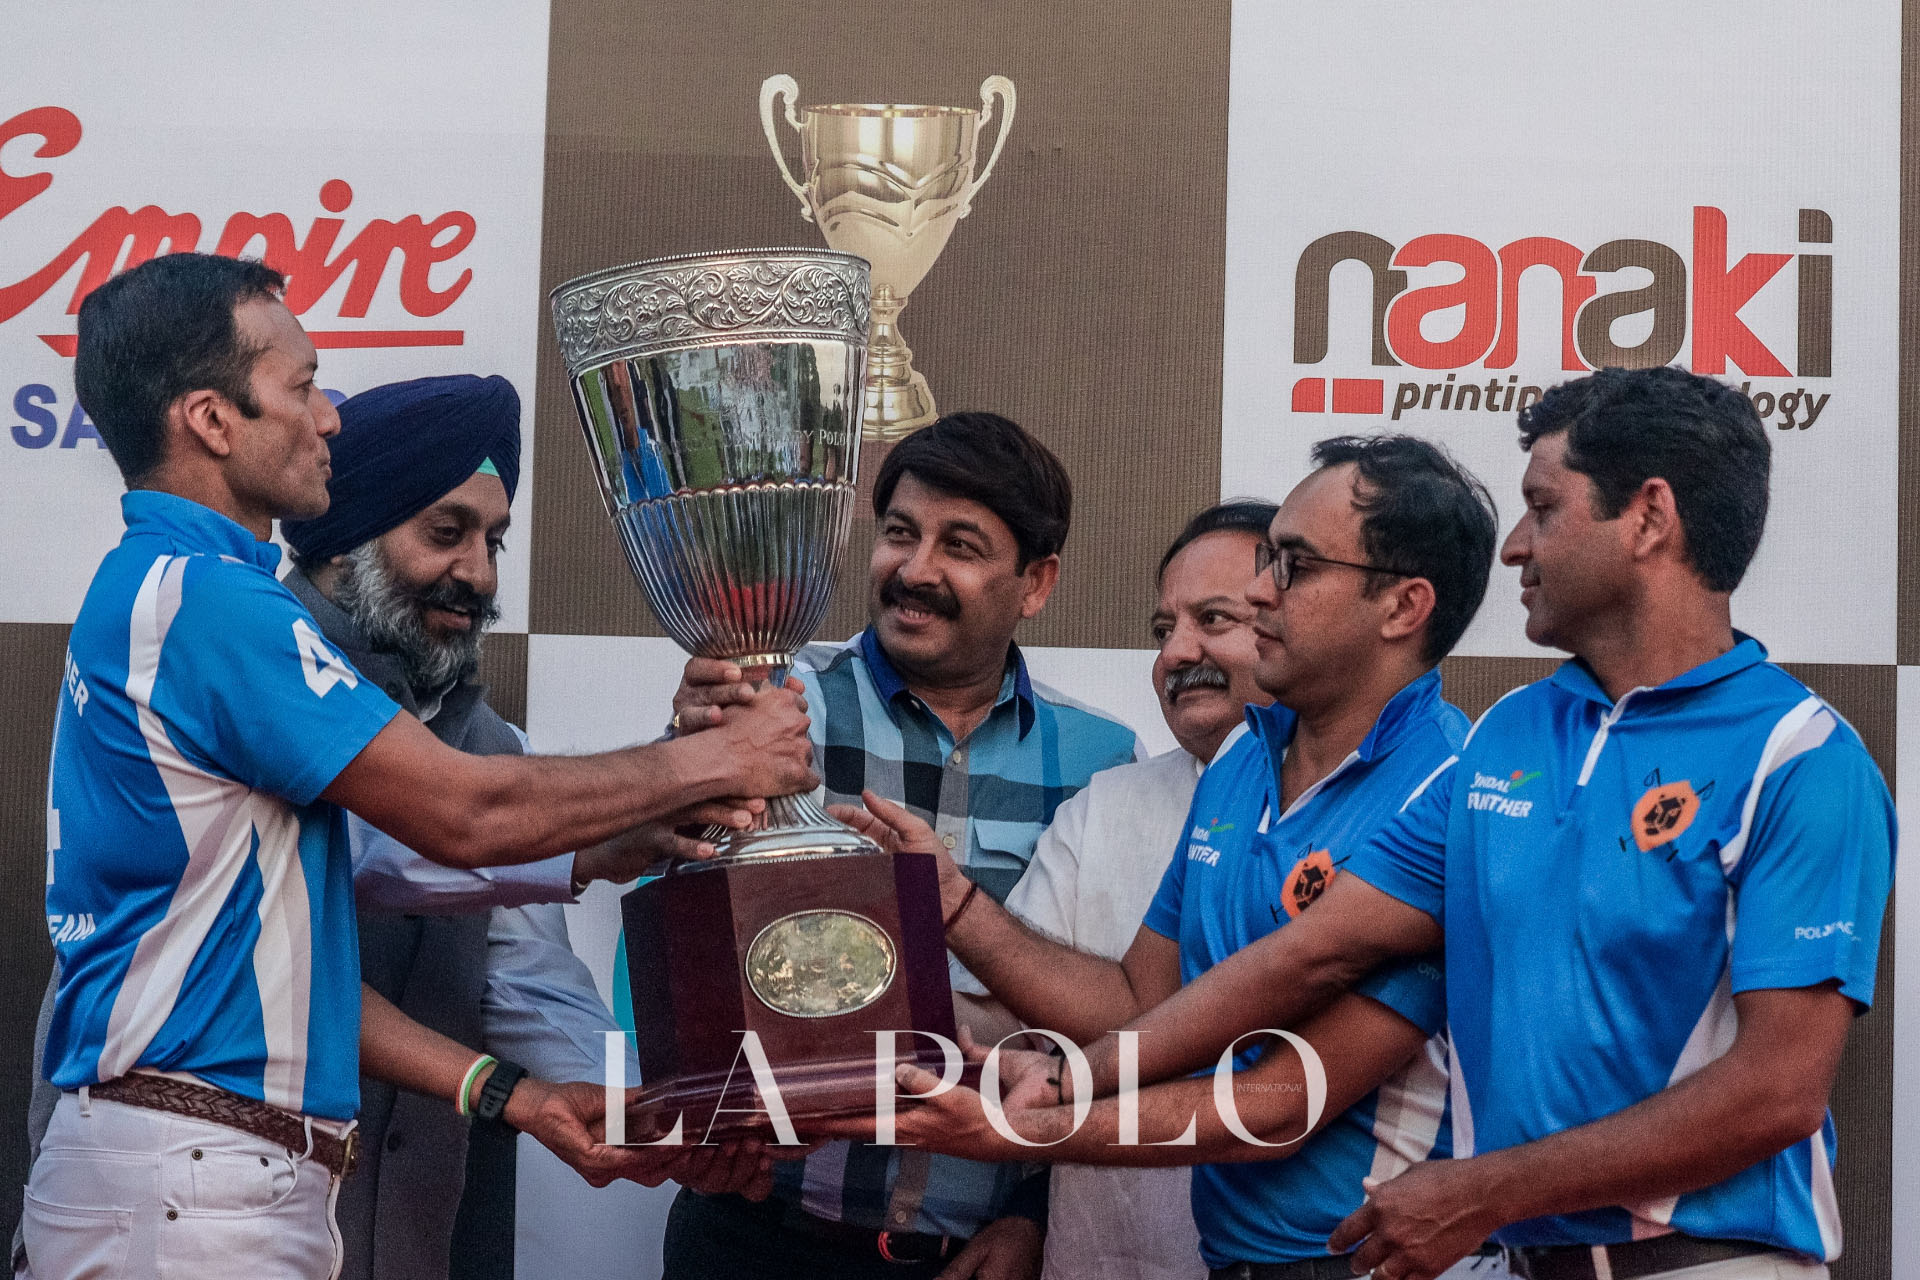 First Tournament Of The Delhi Spring Polo Season 2021- General Sparrow Cup